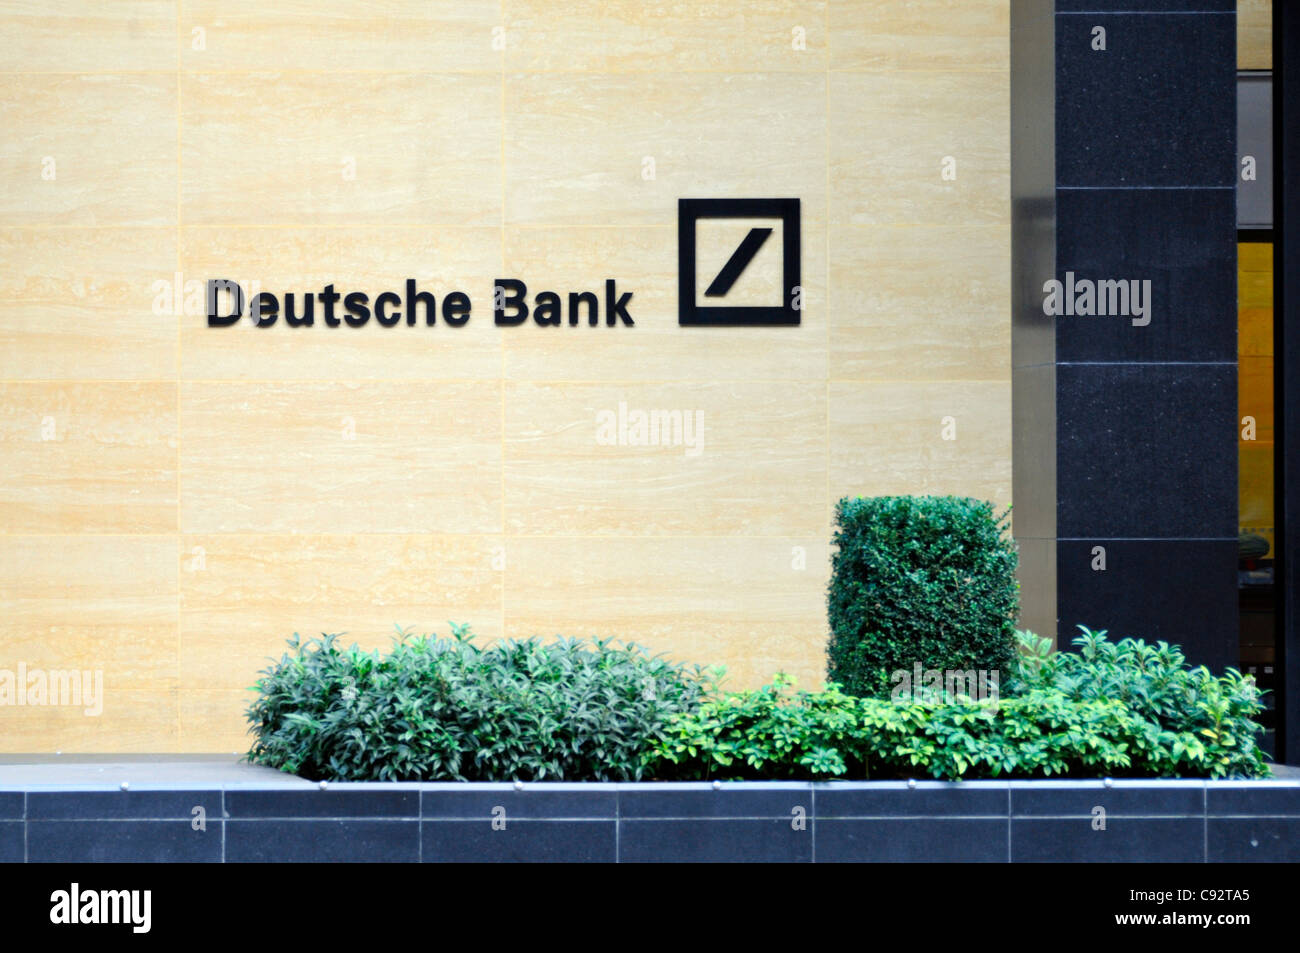 Deutsche Bank sign & logo on office building wall in the financial district square mile of the City of London - Stock Image